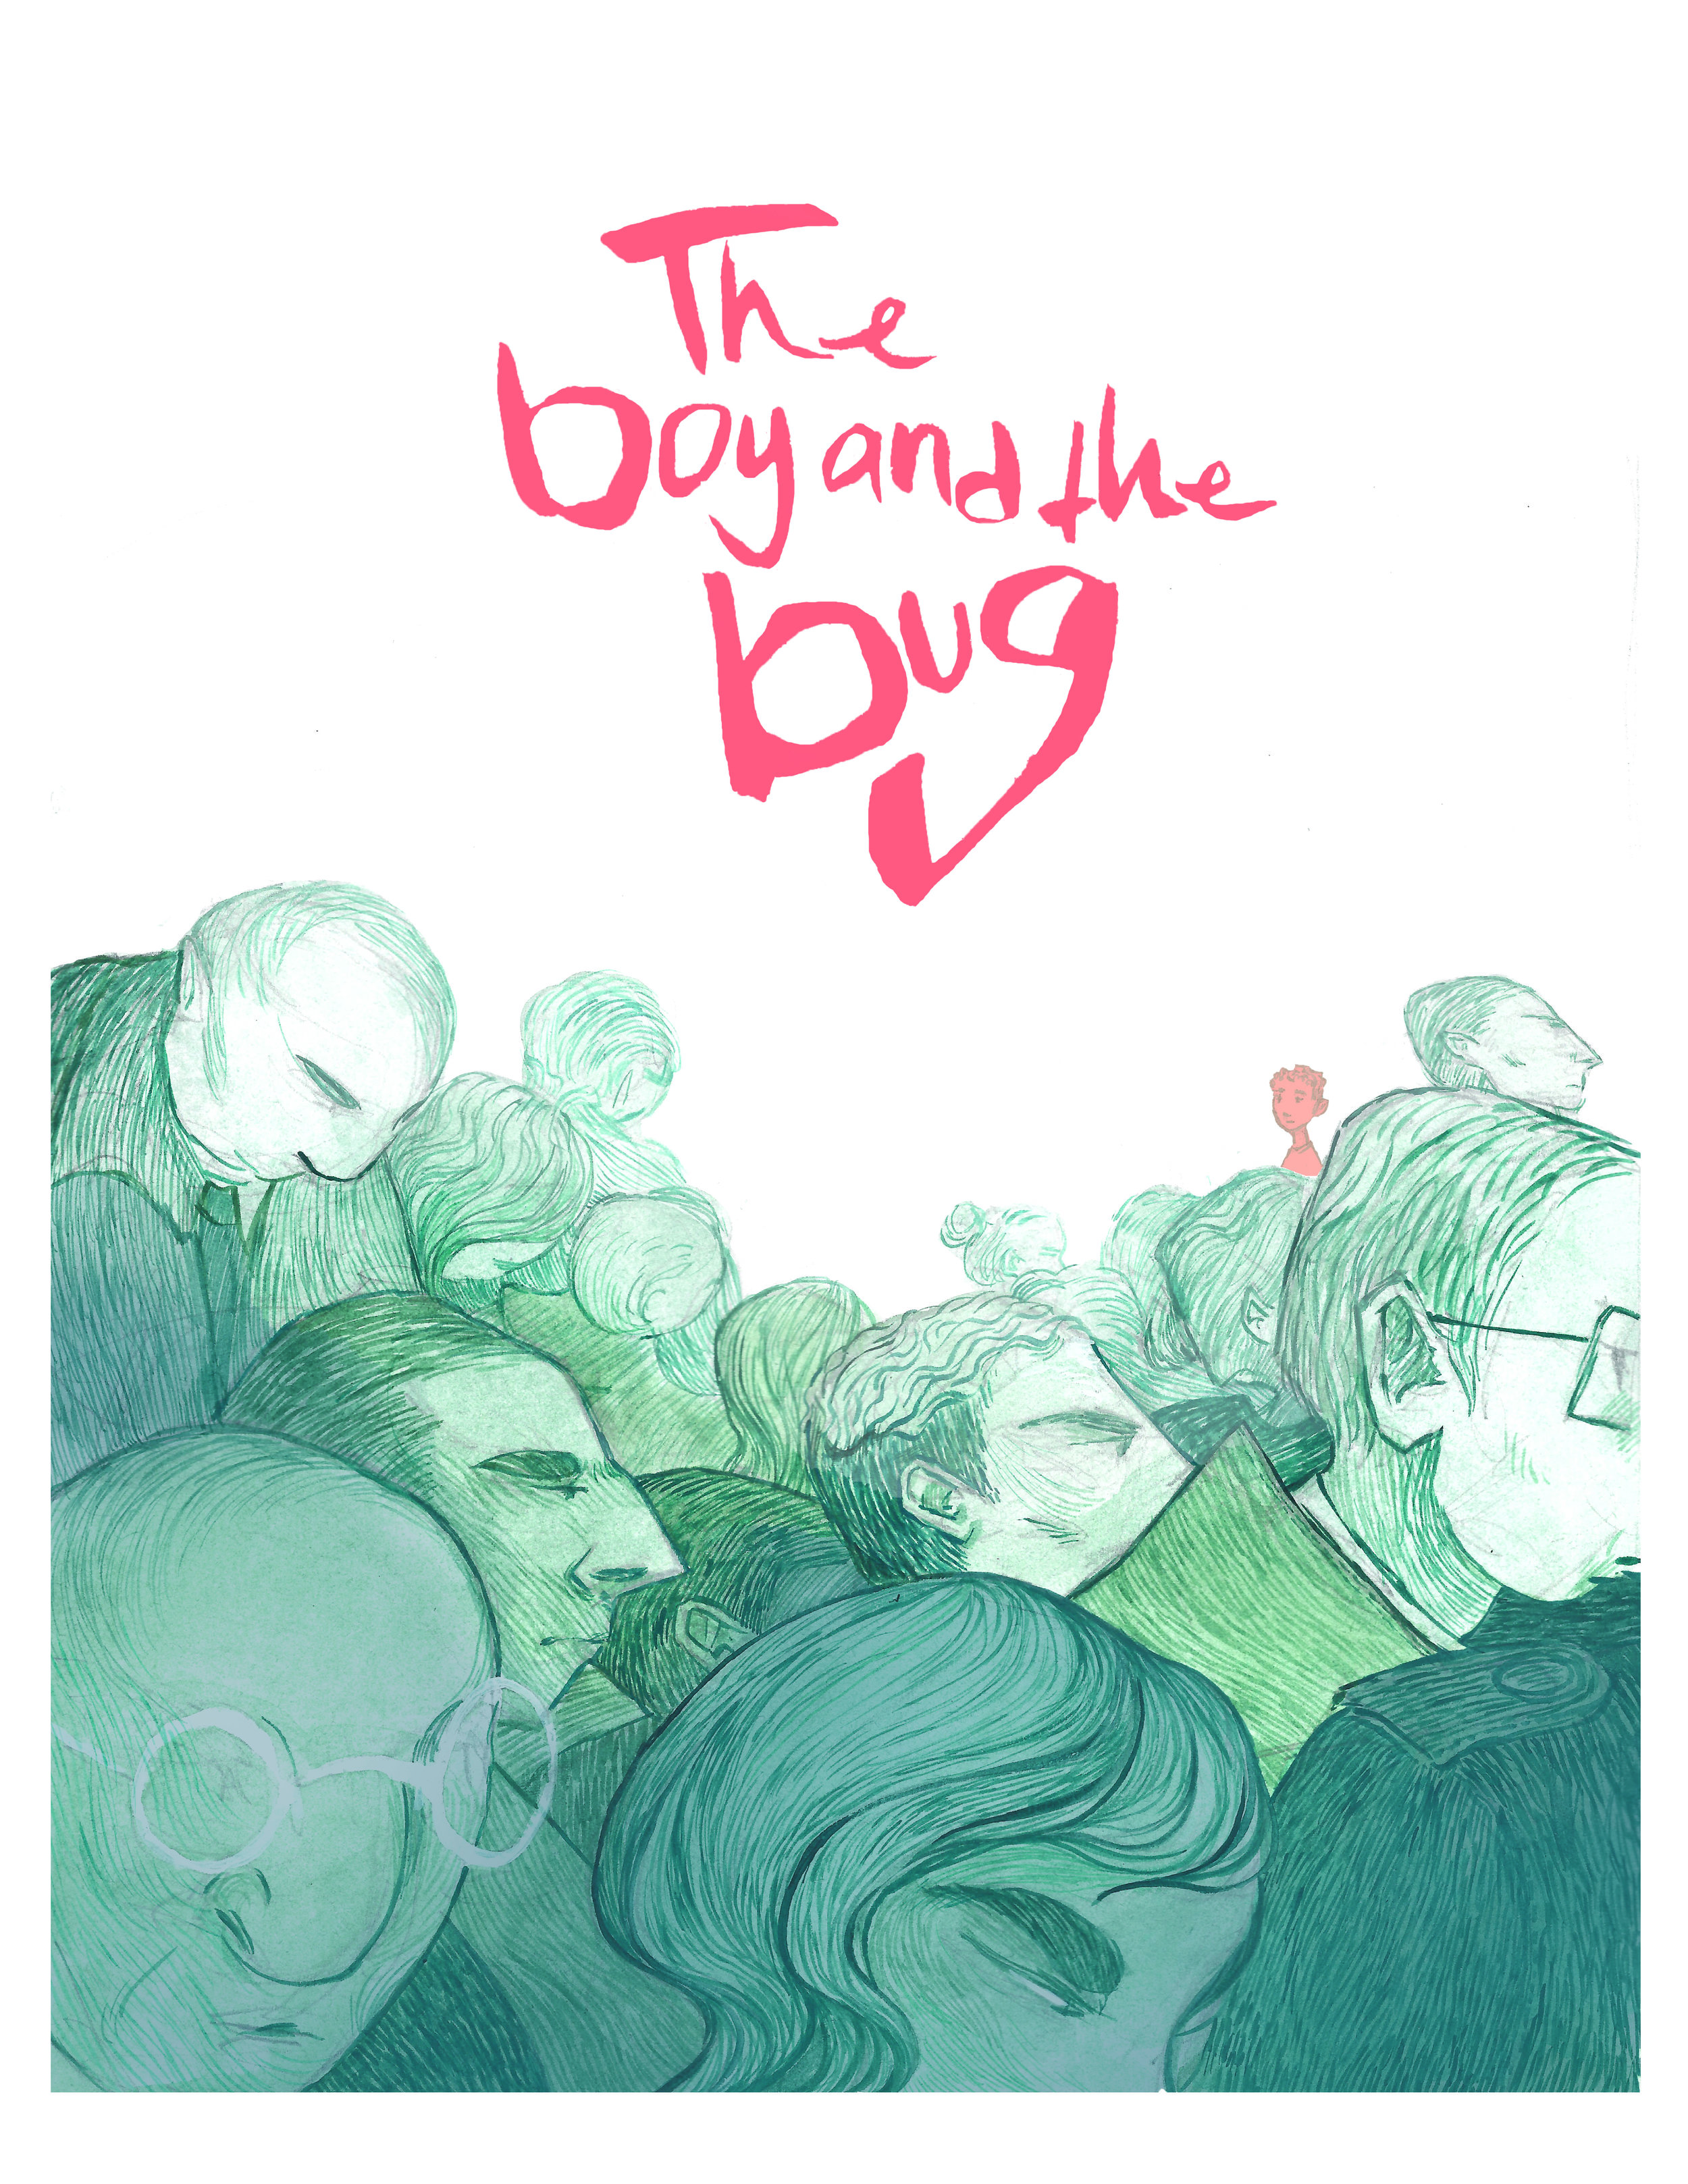 Summer Story Telling - Chapter Six - The Boy and the Bug written by Sarah - Illustrated by Kerilynn